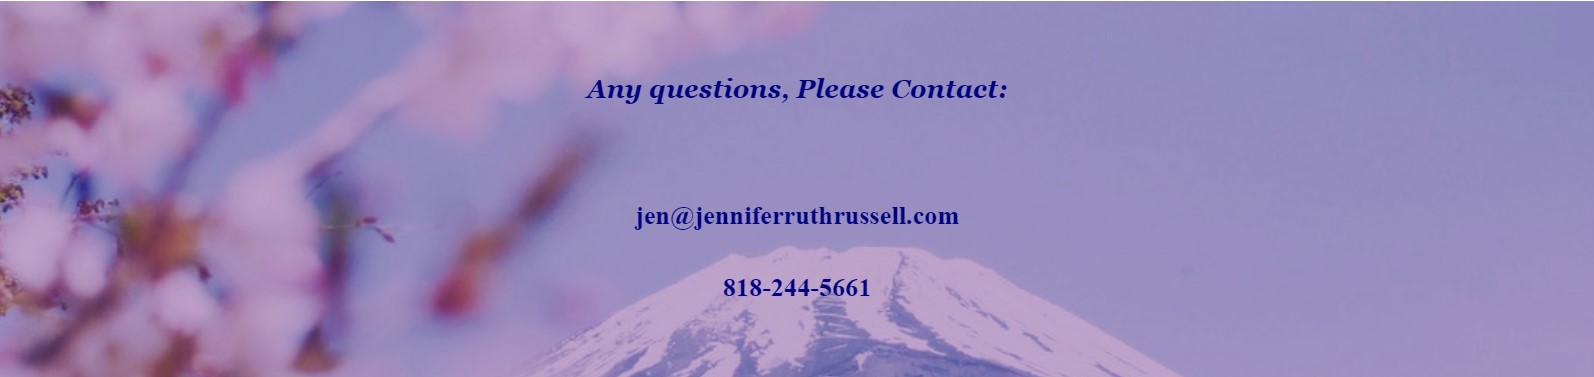 JRR Contact Info